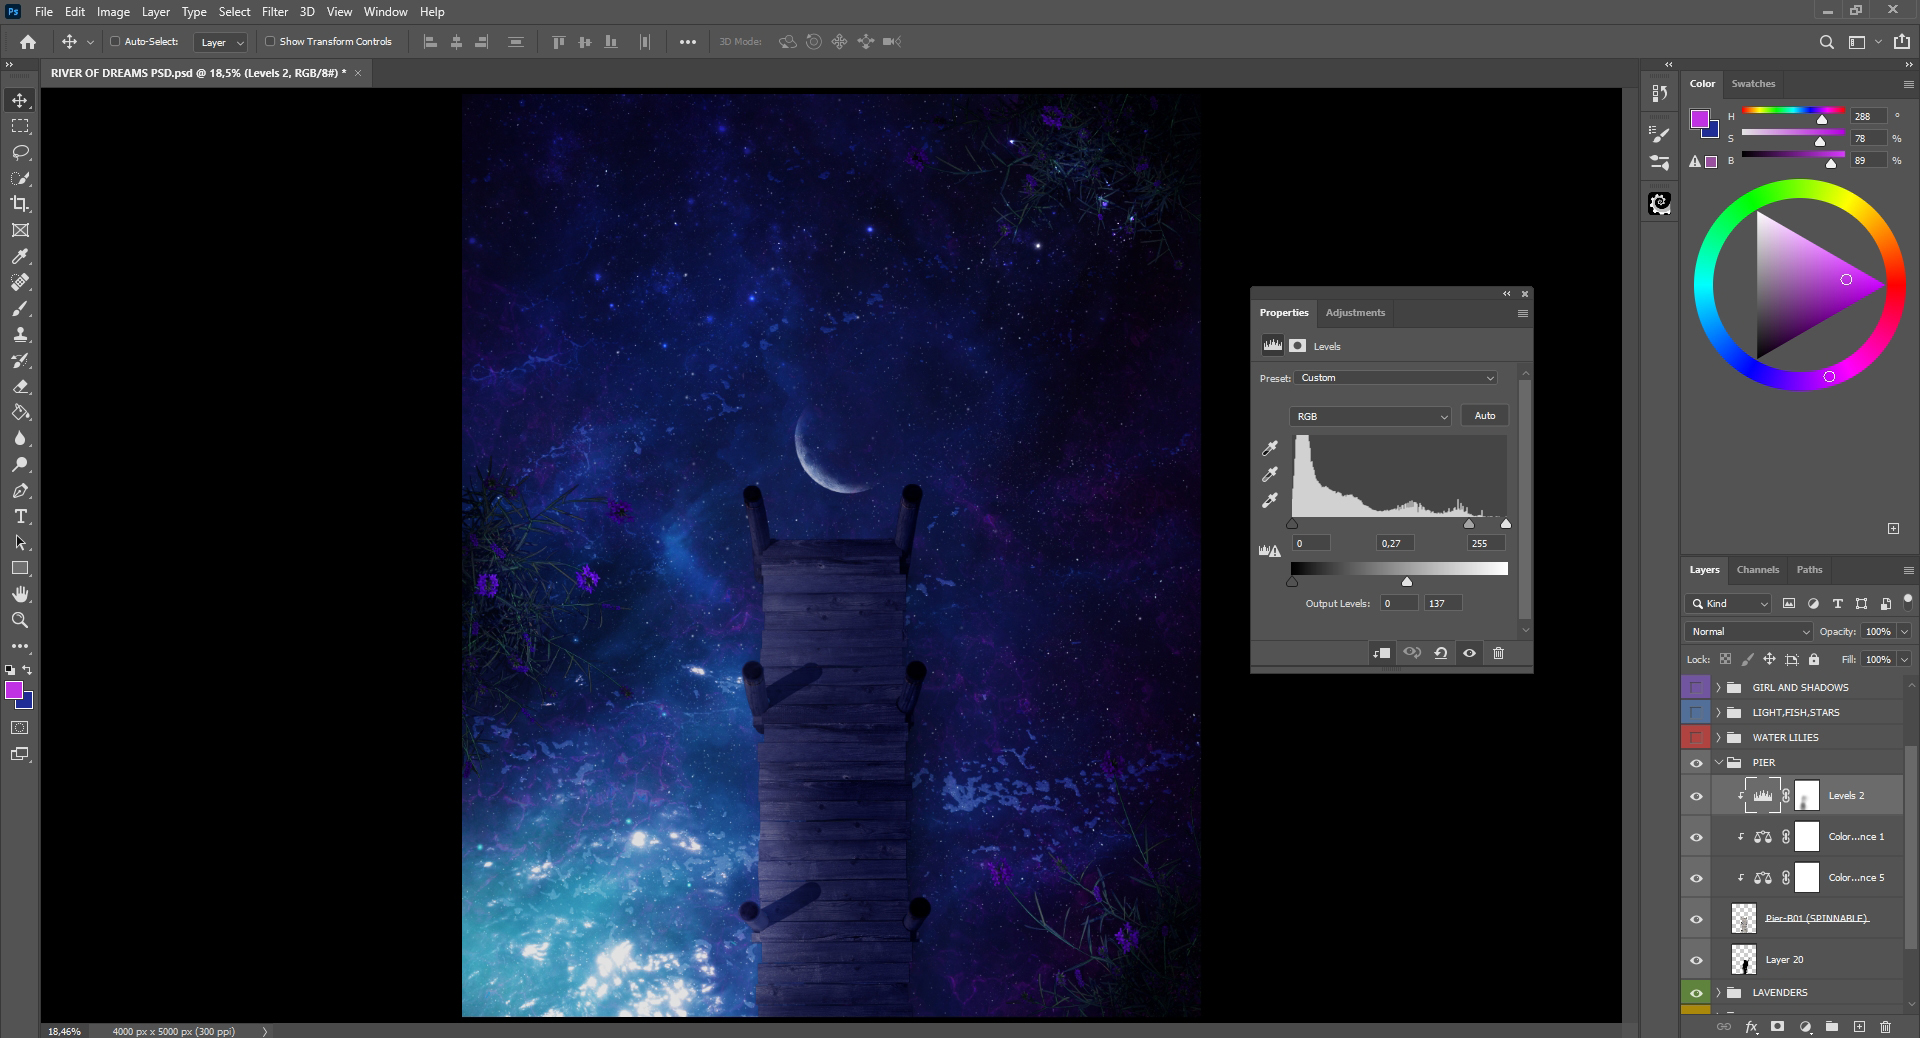 Applying color balance in step 13